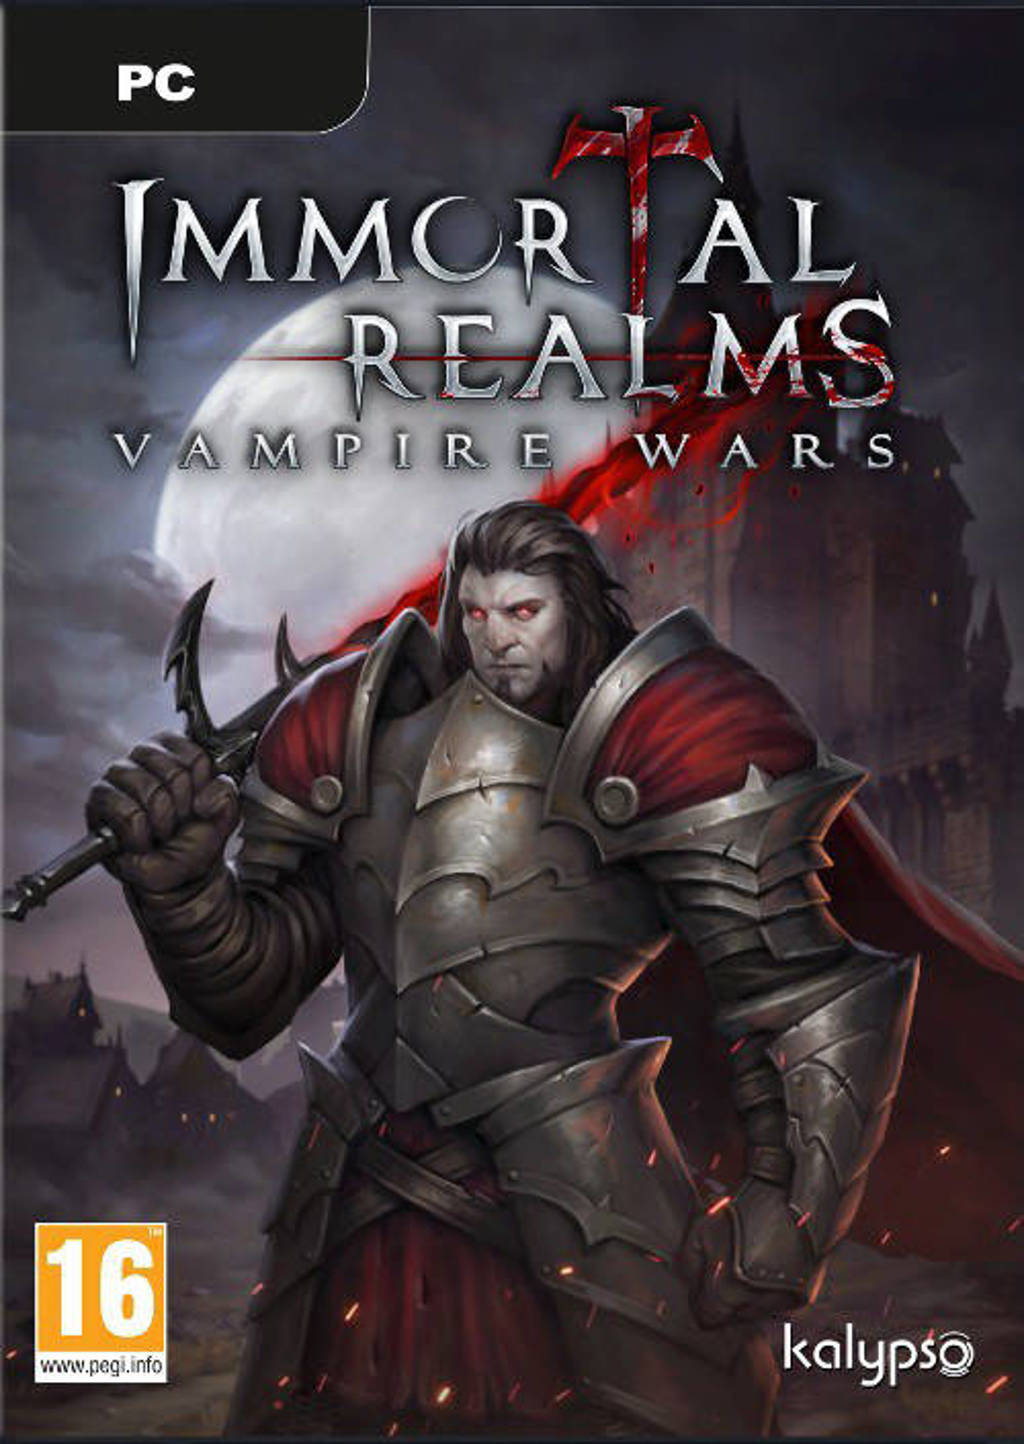 Immortal realms - Vampire wars (PC)